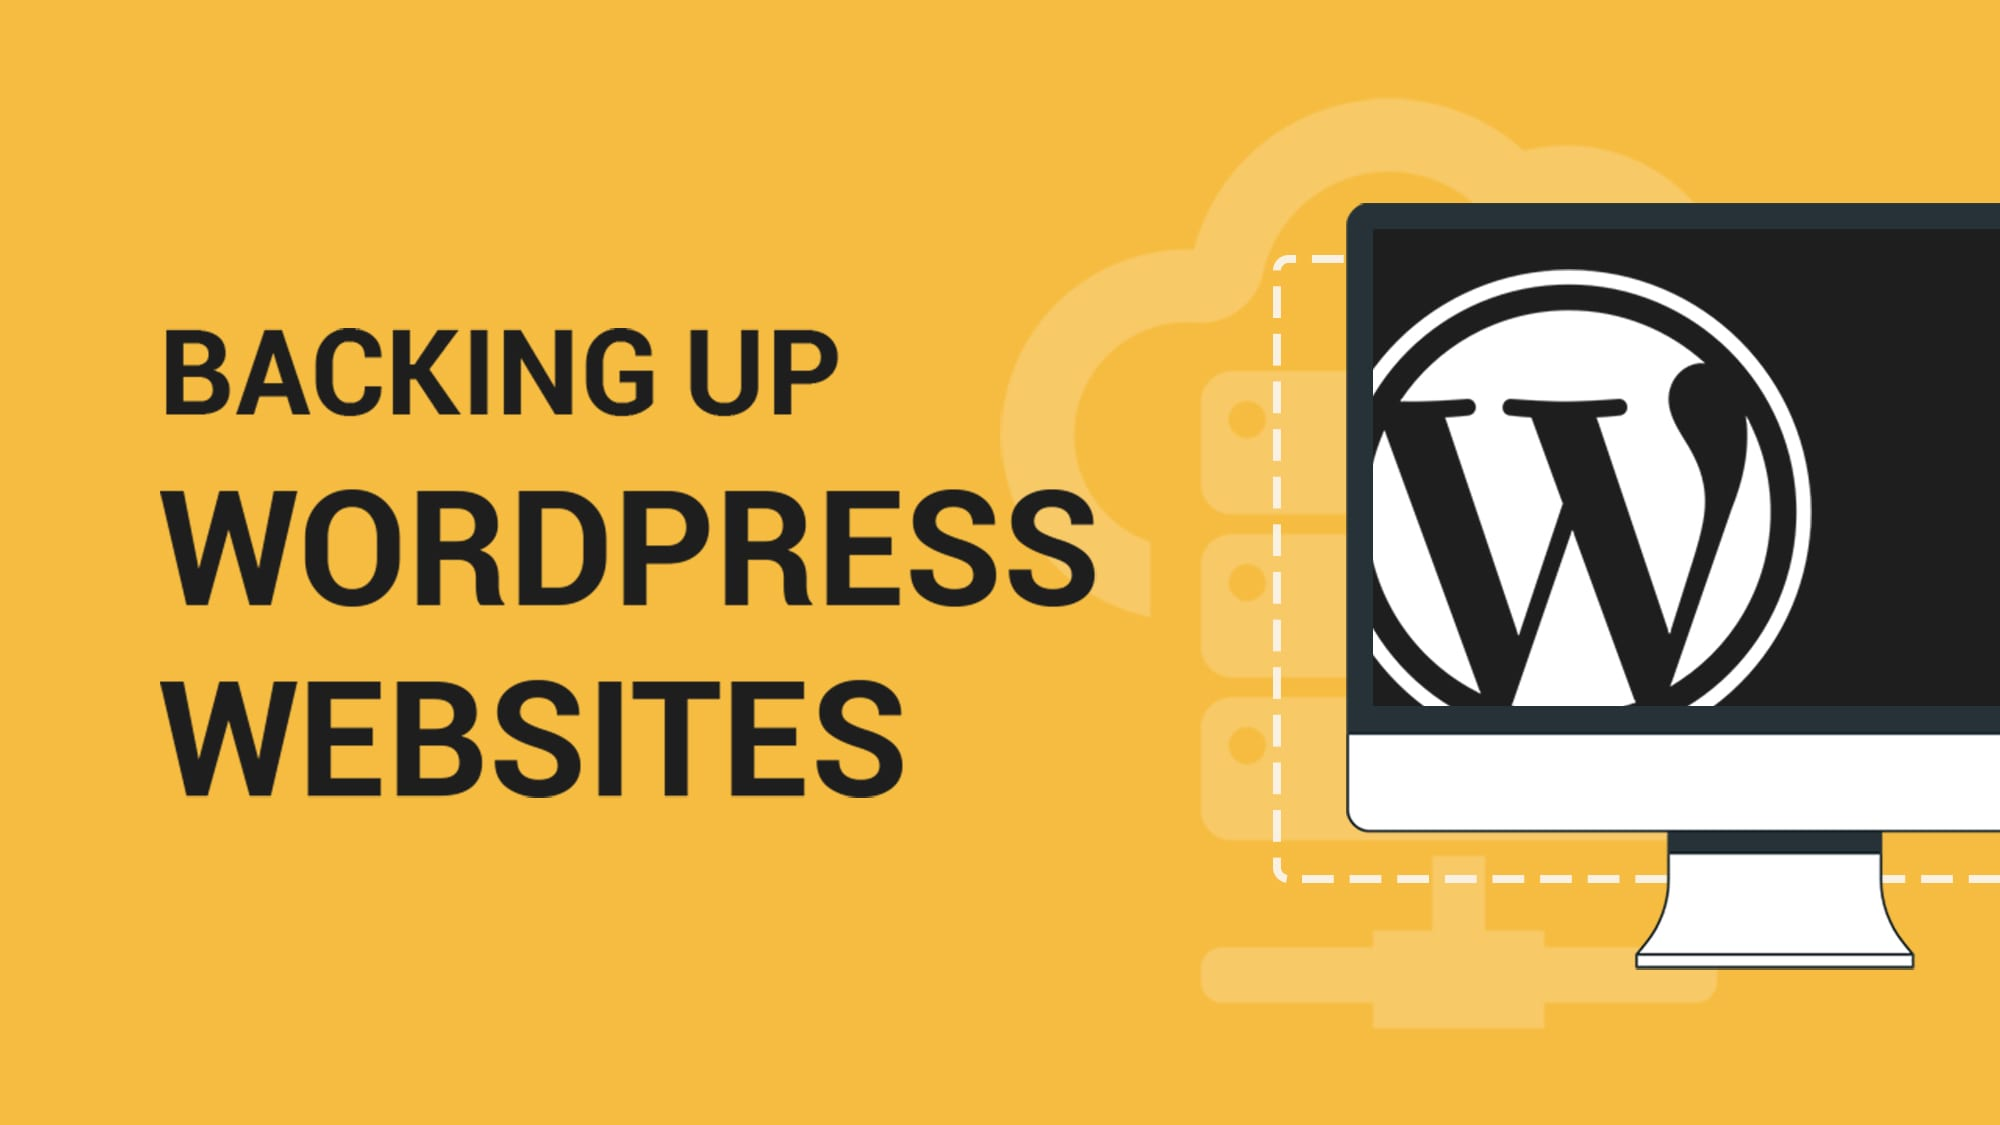 Backing up WordPress Websites